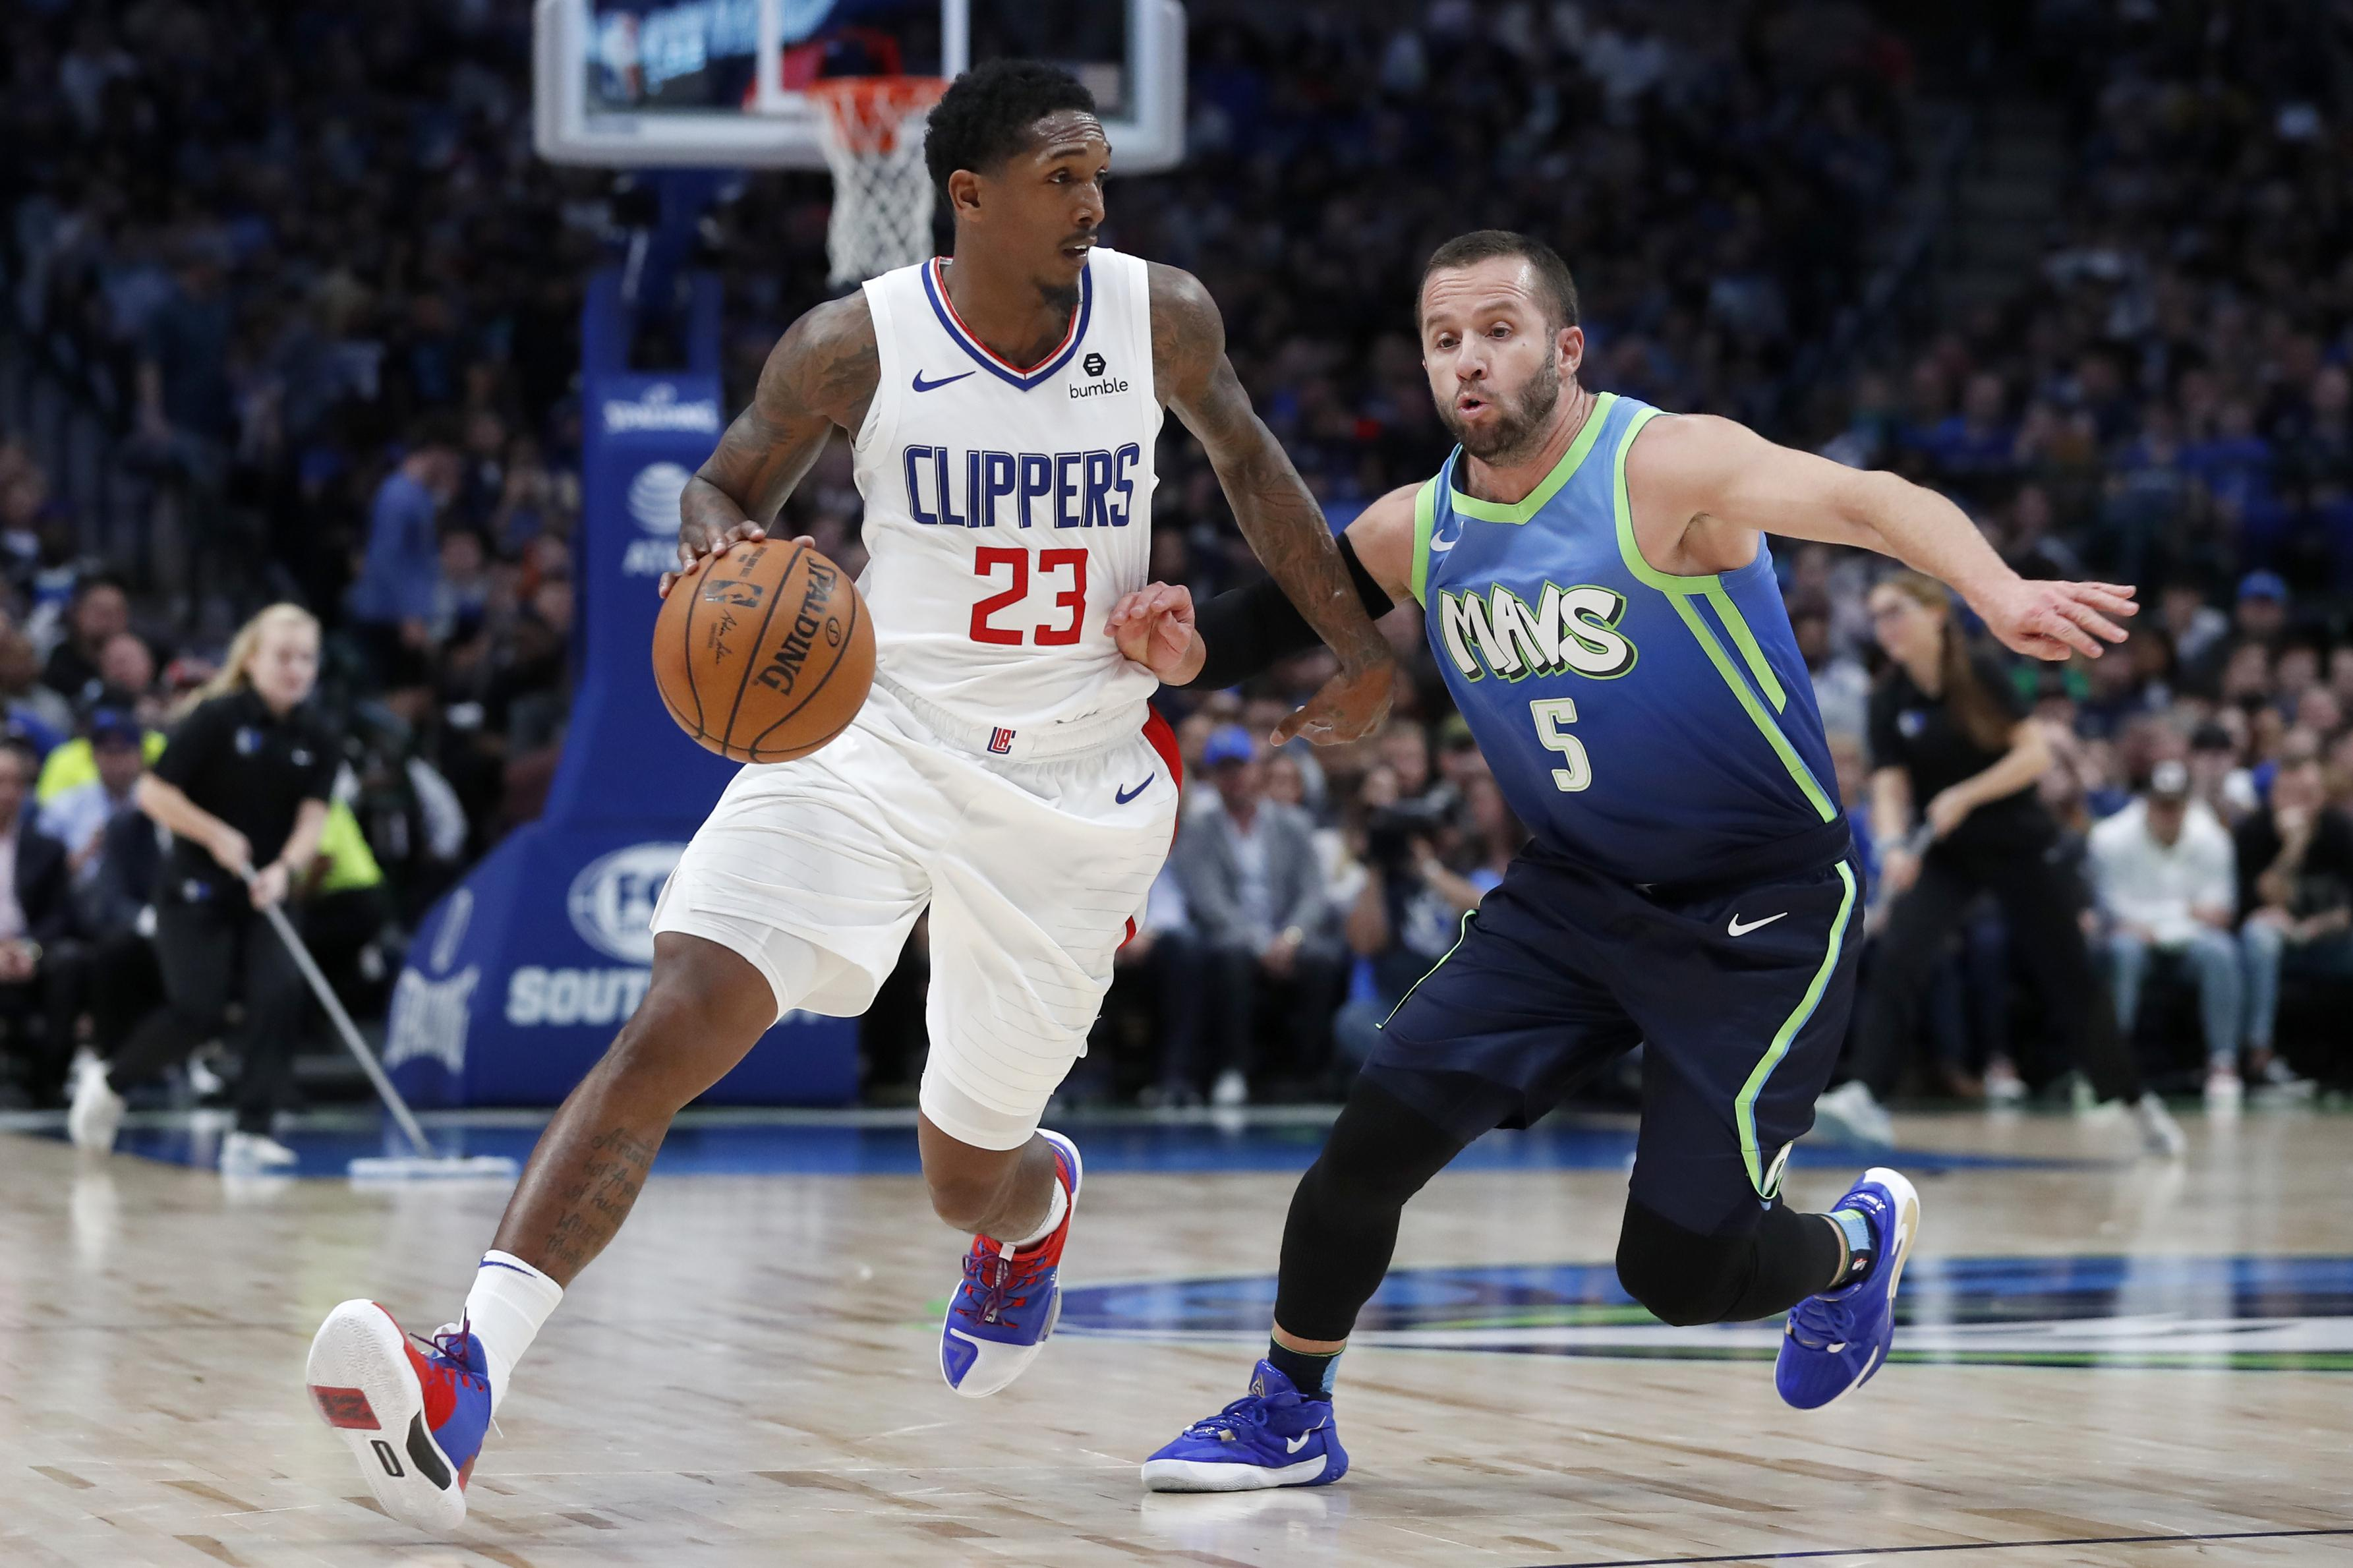 Nba Roundup Paul George Clippers Stop Luka Doncic Mavs